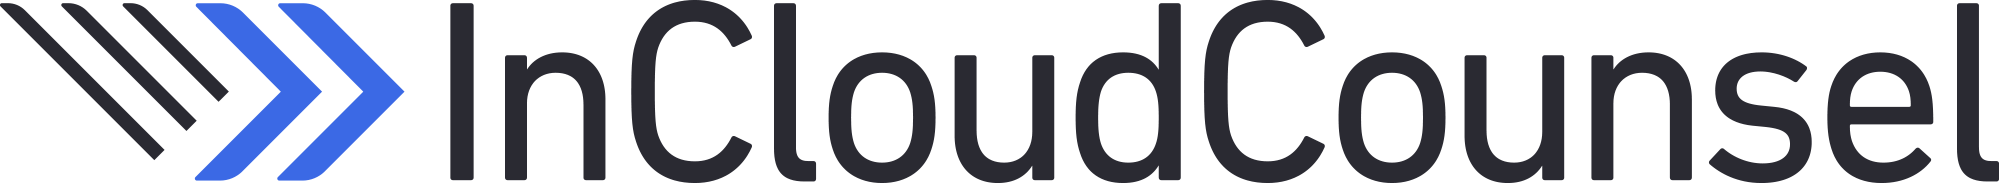 InCloudCounsel-Two-Color-Horz.png